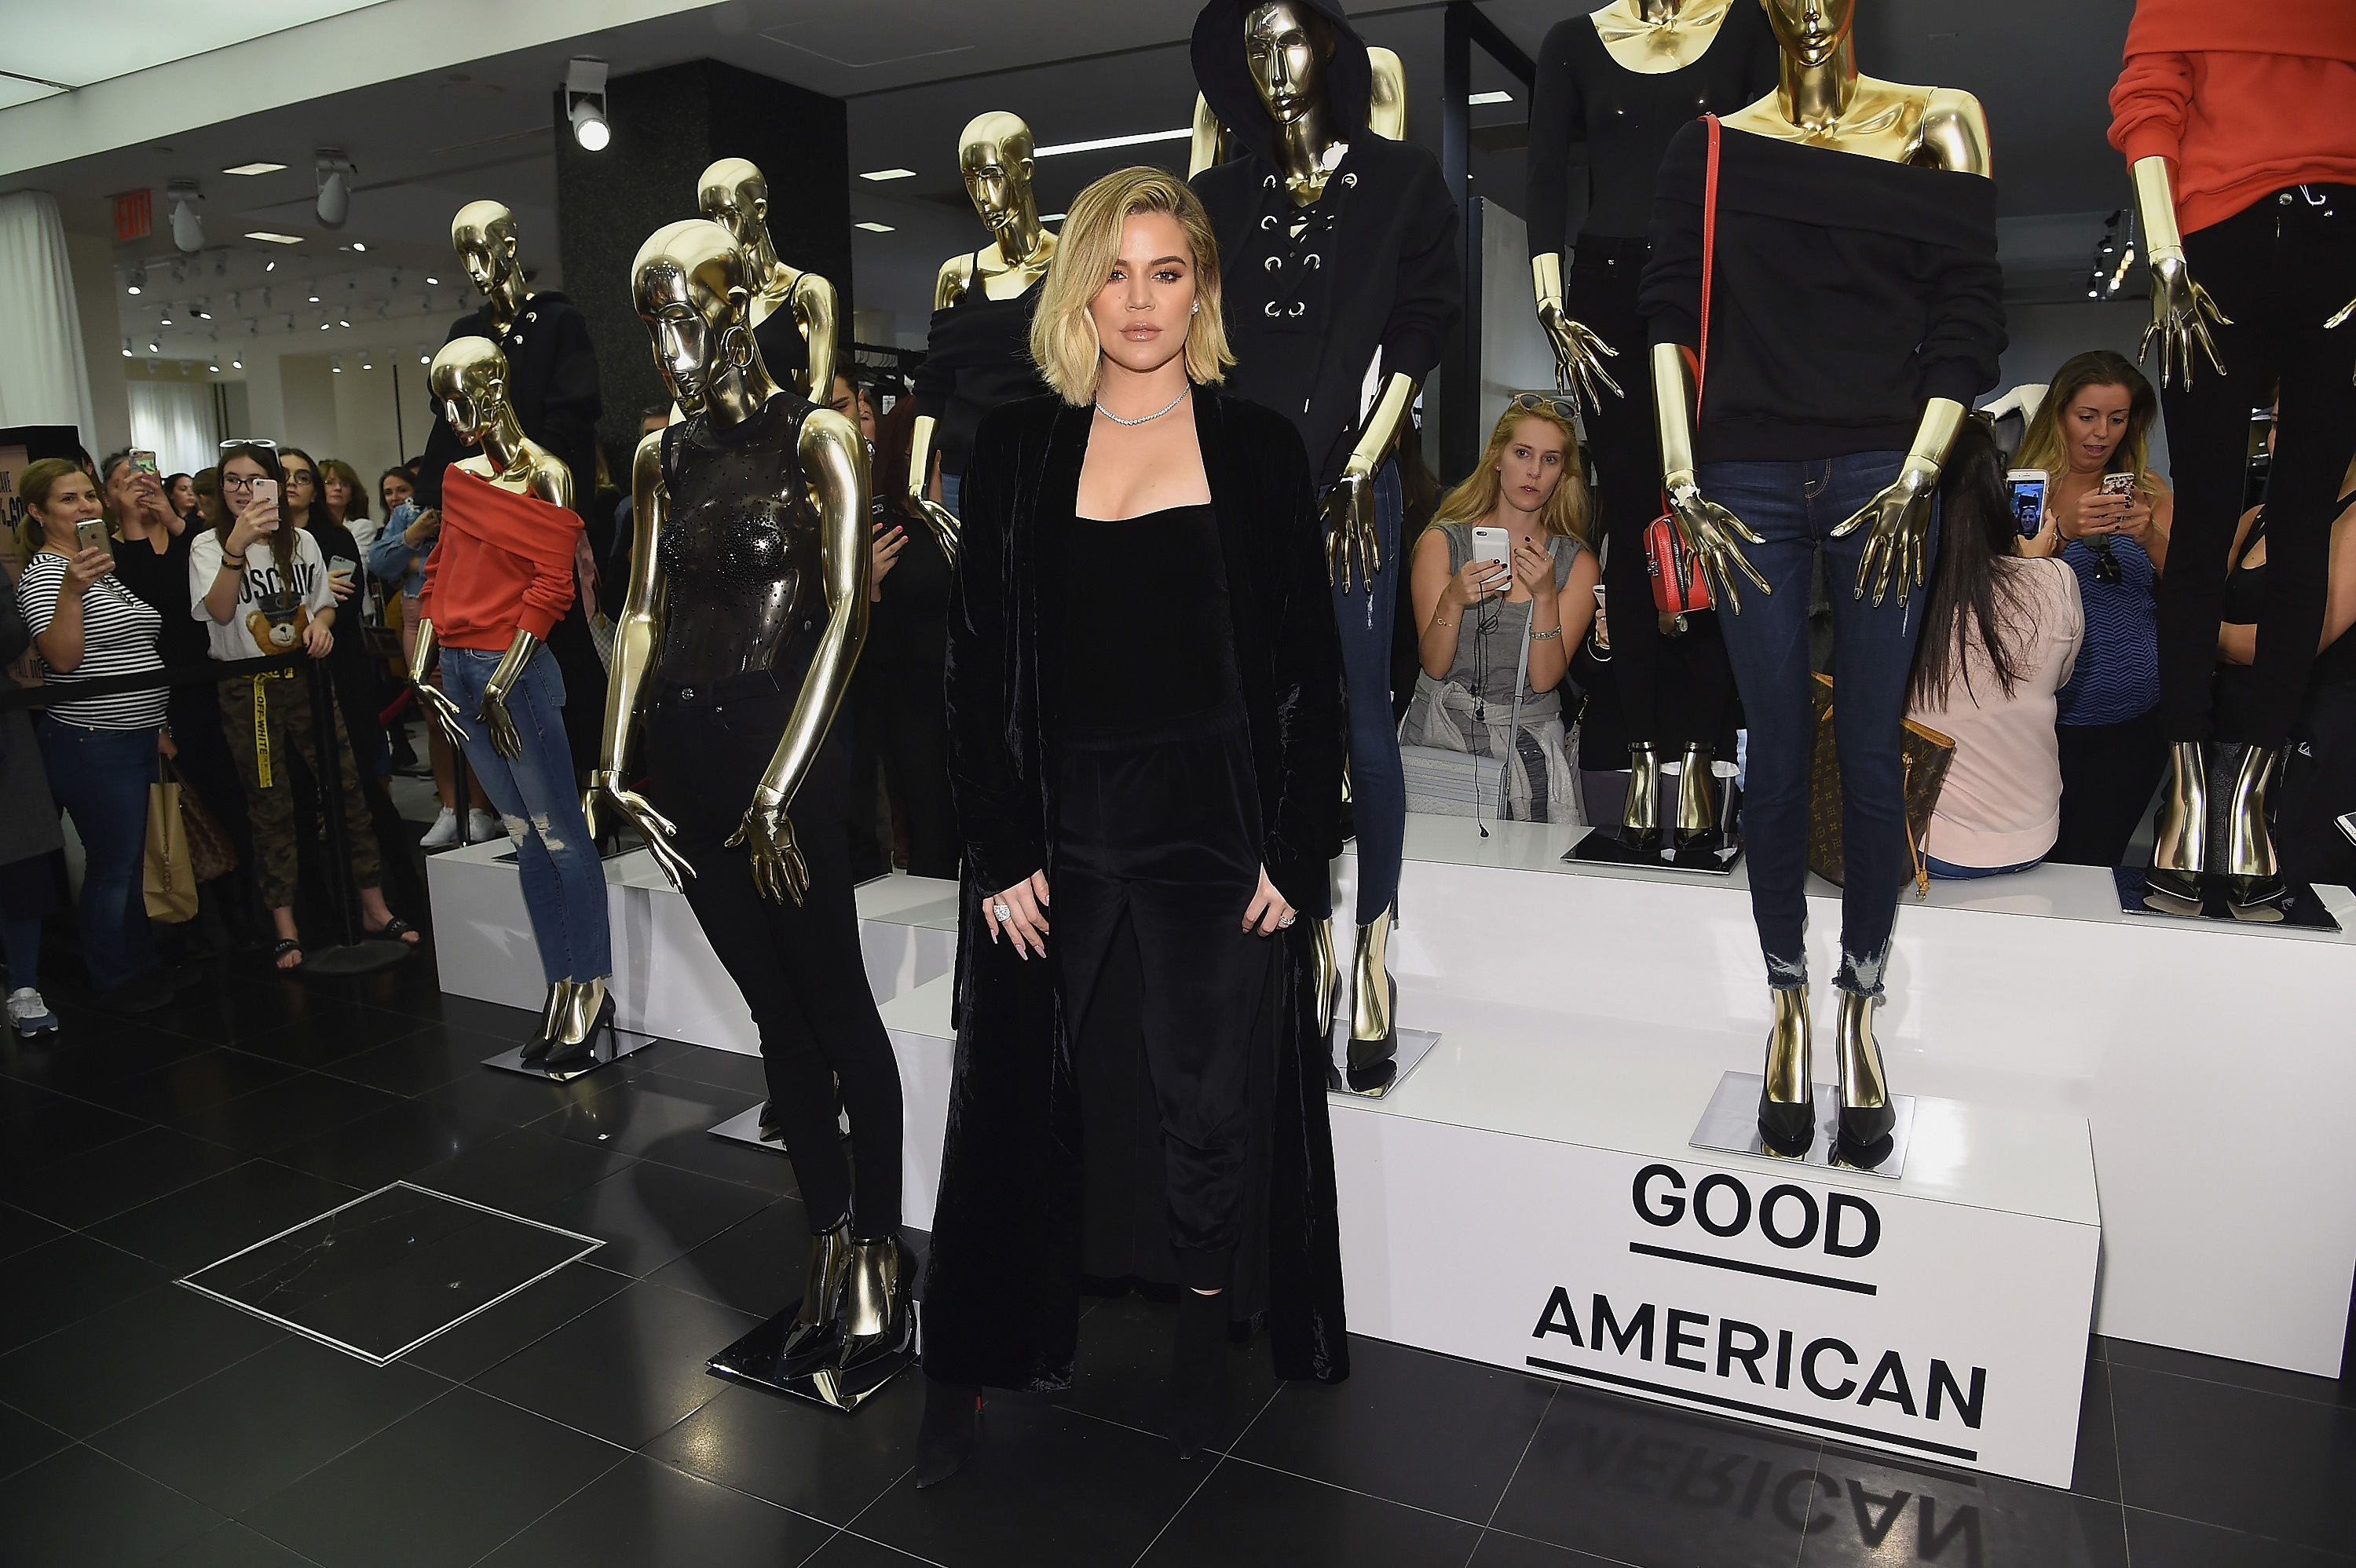 Khloé Kardashian announced a Good American maternity jeans collection on Instagram